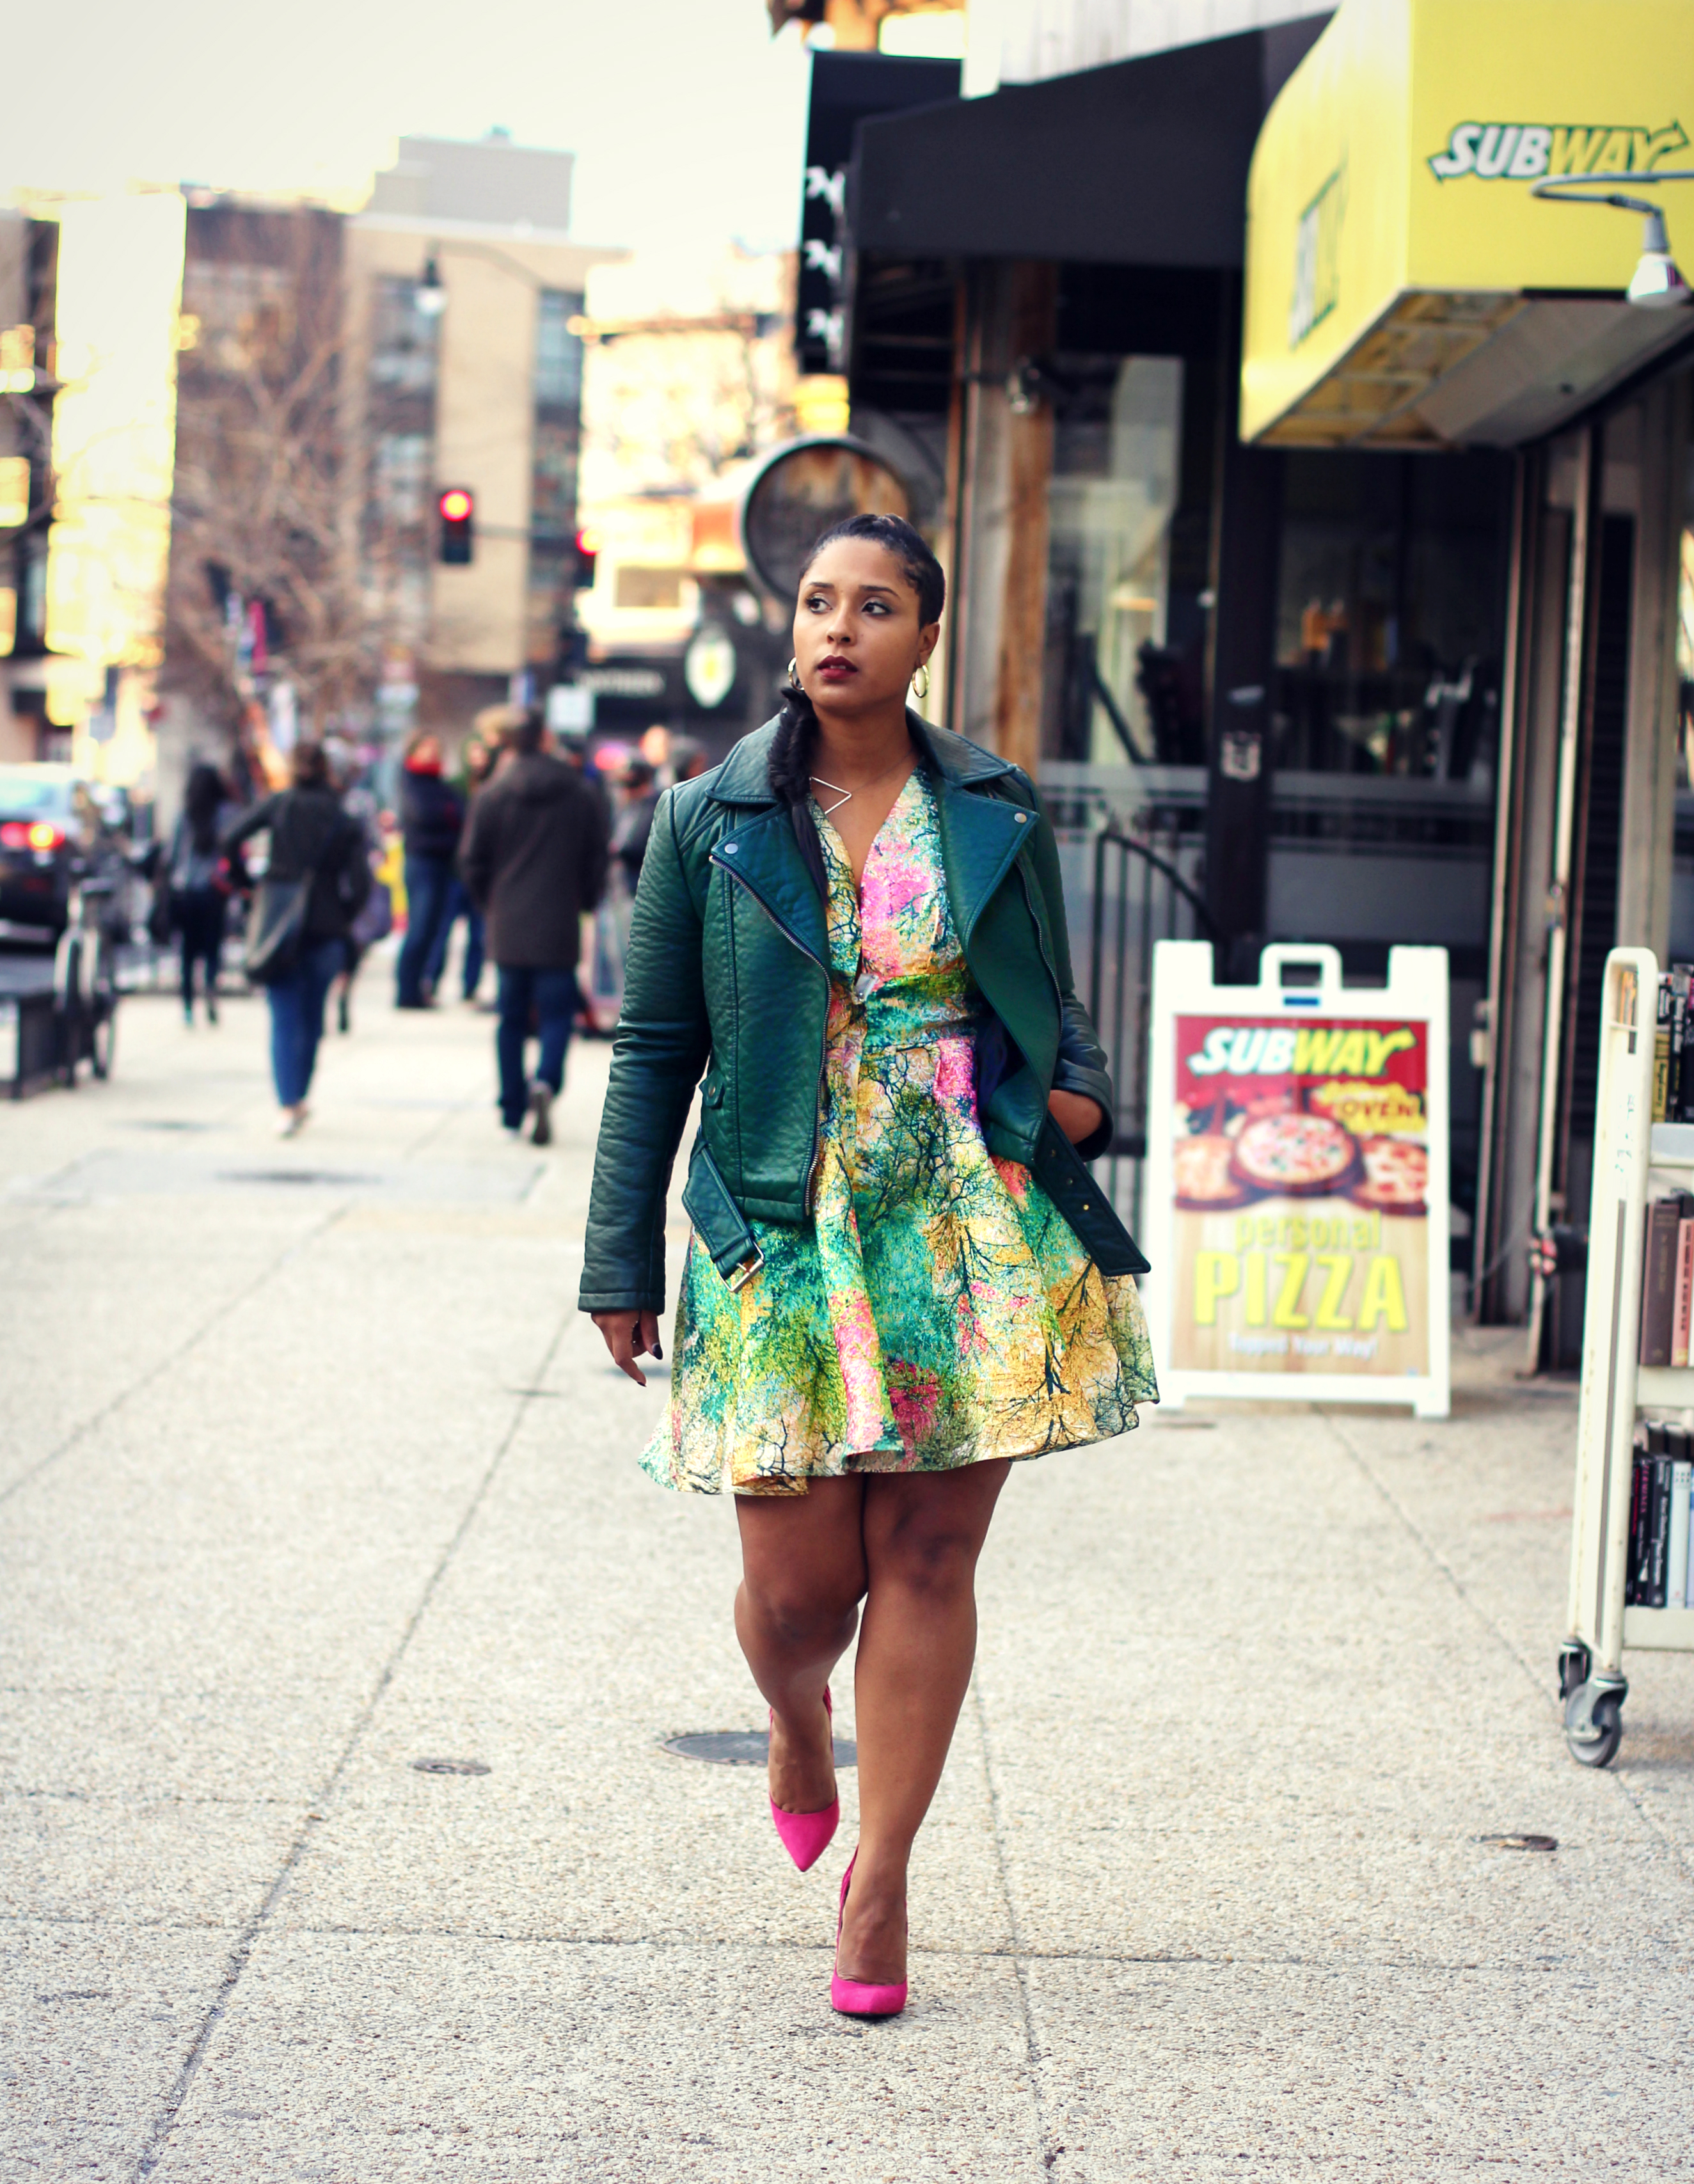 jennifer jean pierre of comme coco - The Perfect Dress